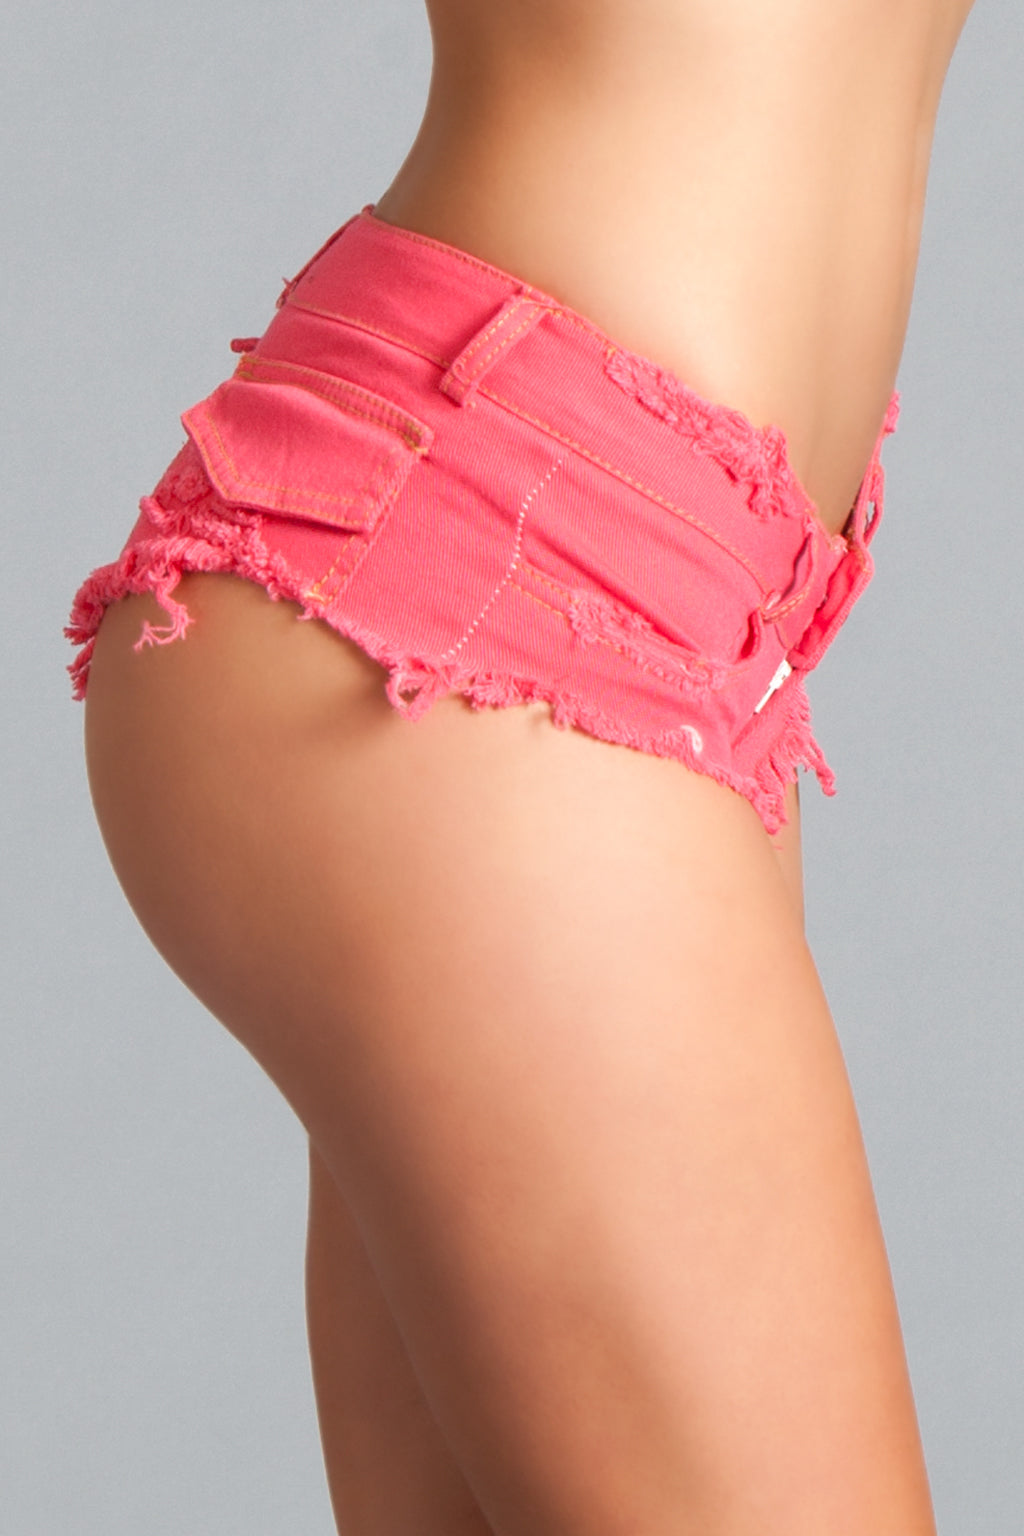 LALA TRENDS Be Wicked Sunny Daze Distressed Cut Off Shorts Hot Pink Booty Shorts $20.95